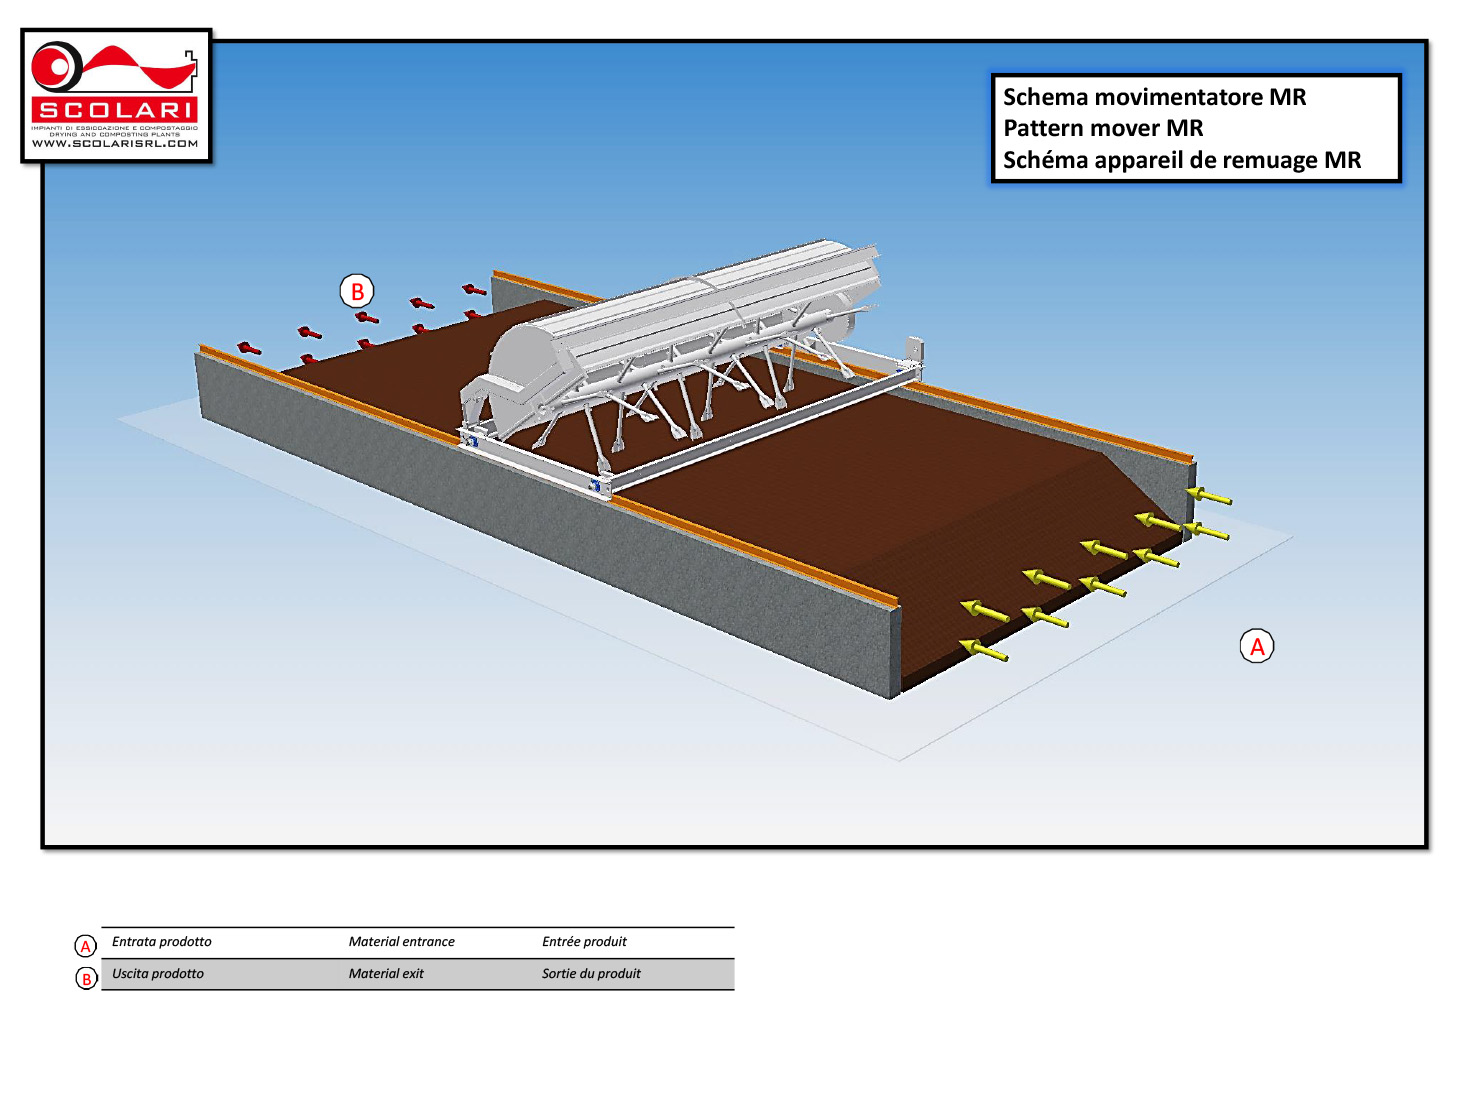 Installations compostage biotunnel fabricants